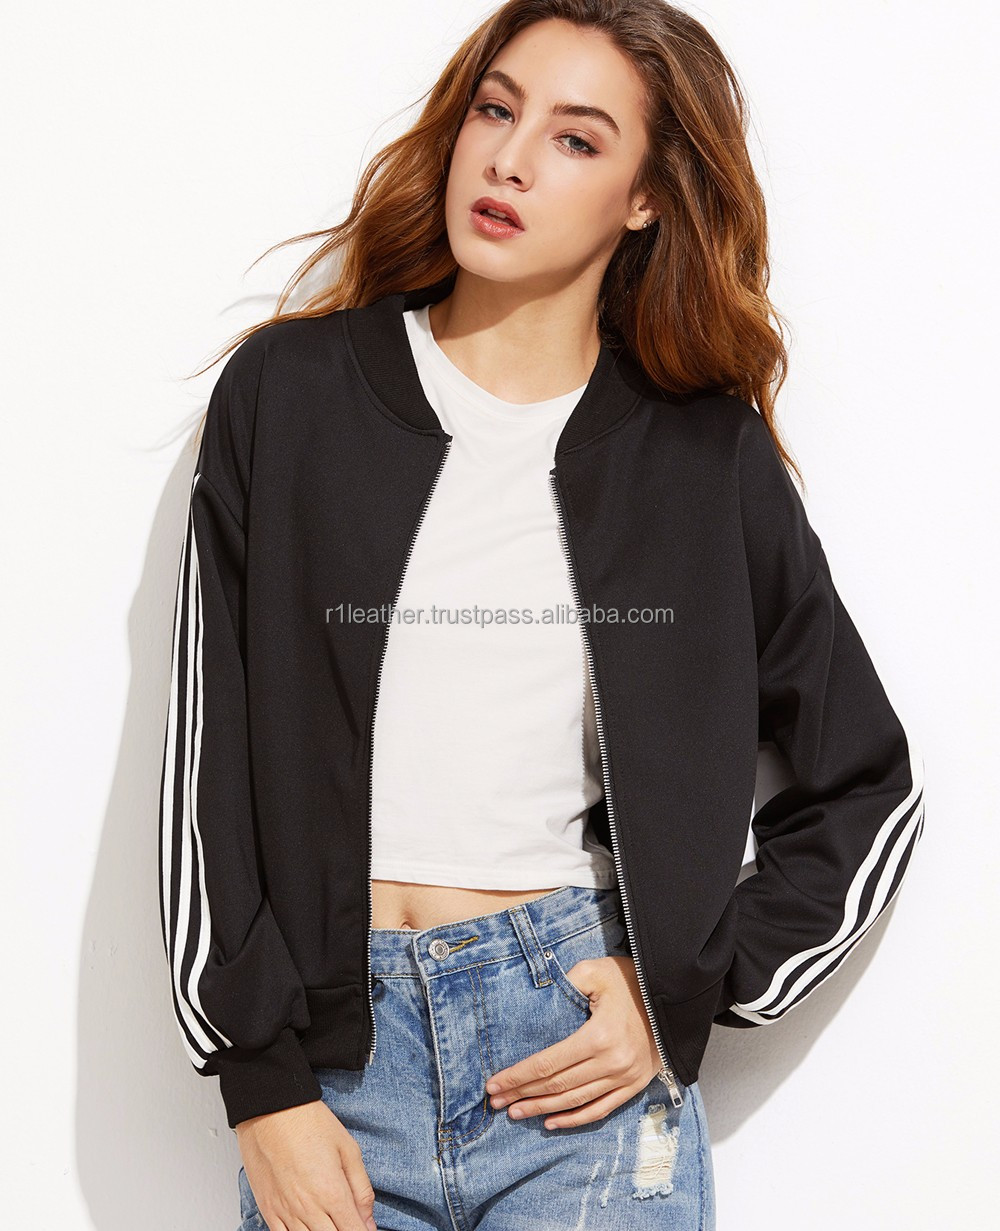 Women Men College Wear Varsity Jacket Online,Wholesale Jacket Women Fit Varsity Jacket